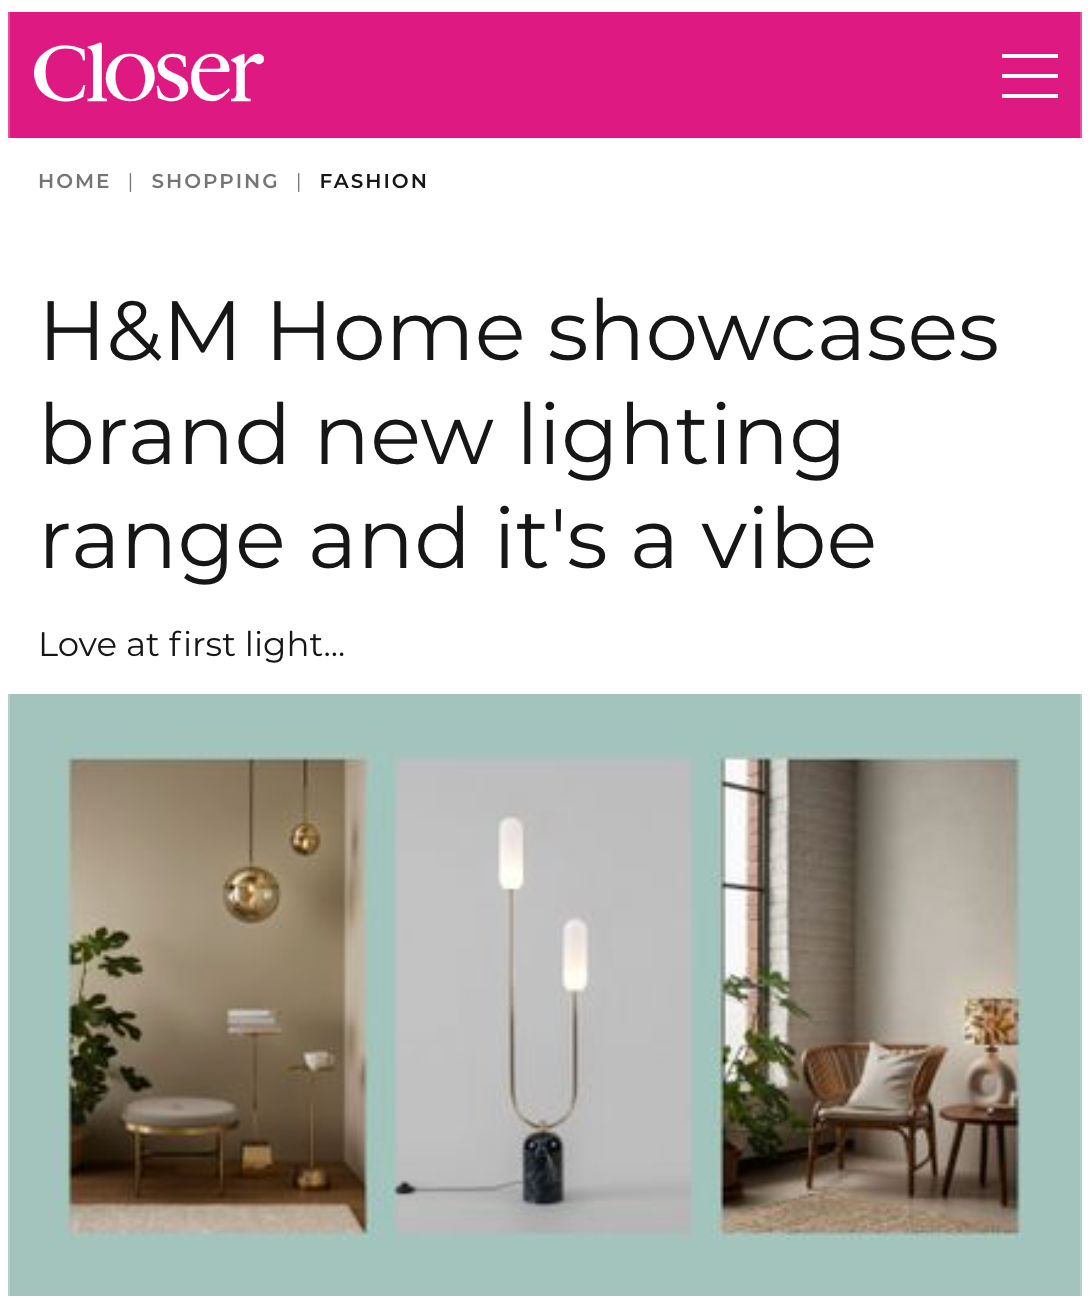 houseof-press-img-0620-closer-hm-lighting-1